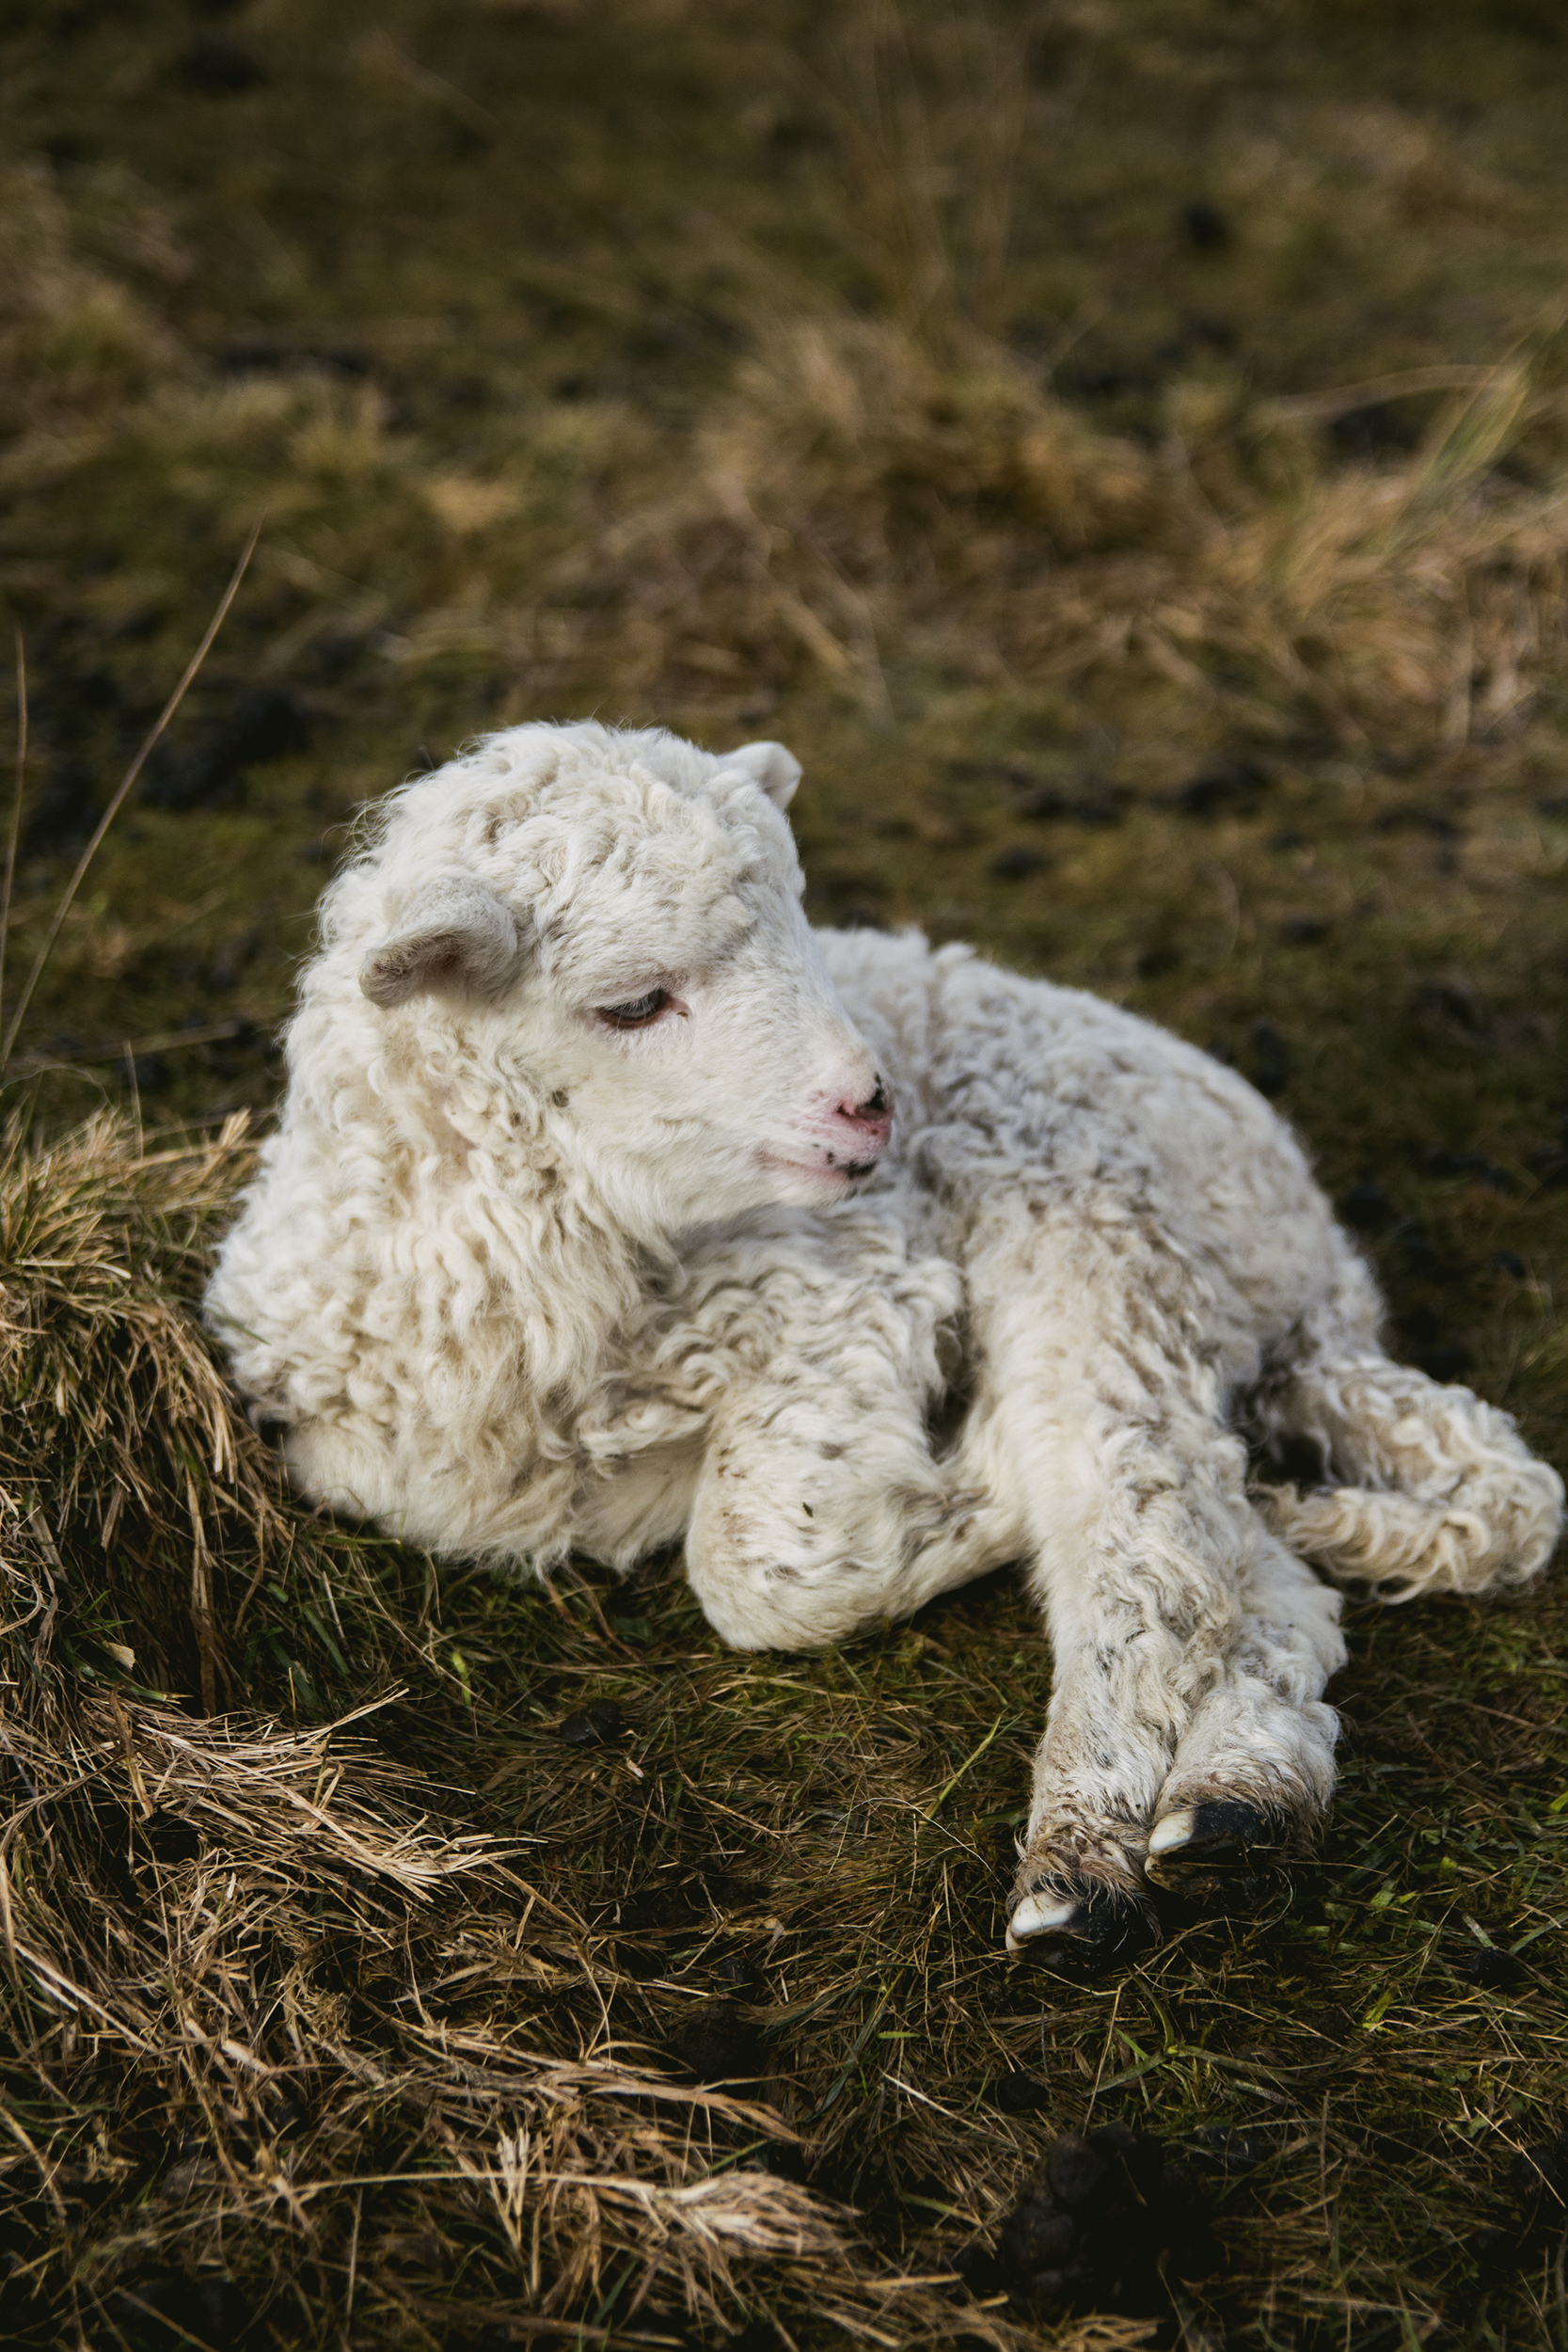 Love Wallpaper For Iphone 5 White Lamb Near Fence 183 Free Stock Photo